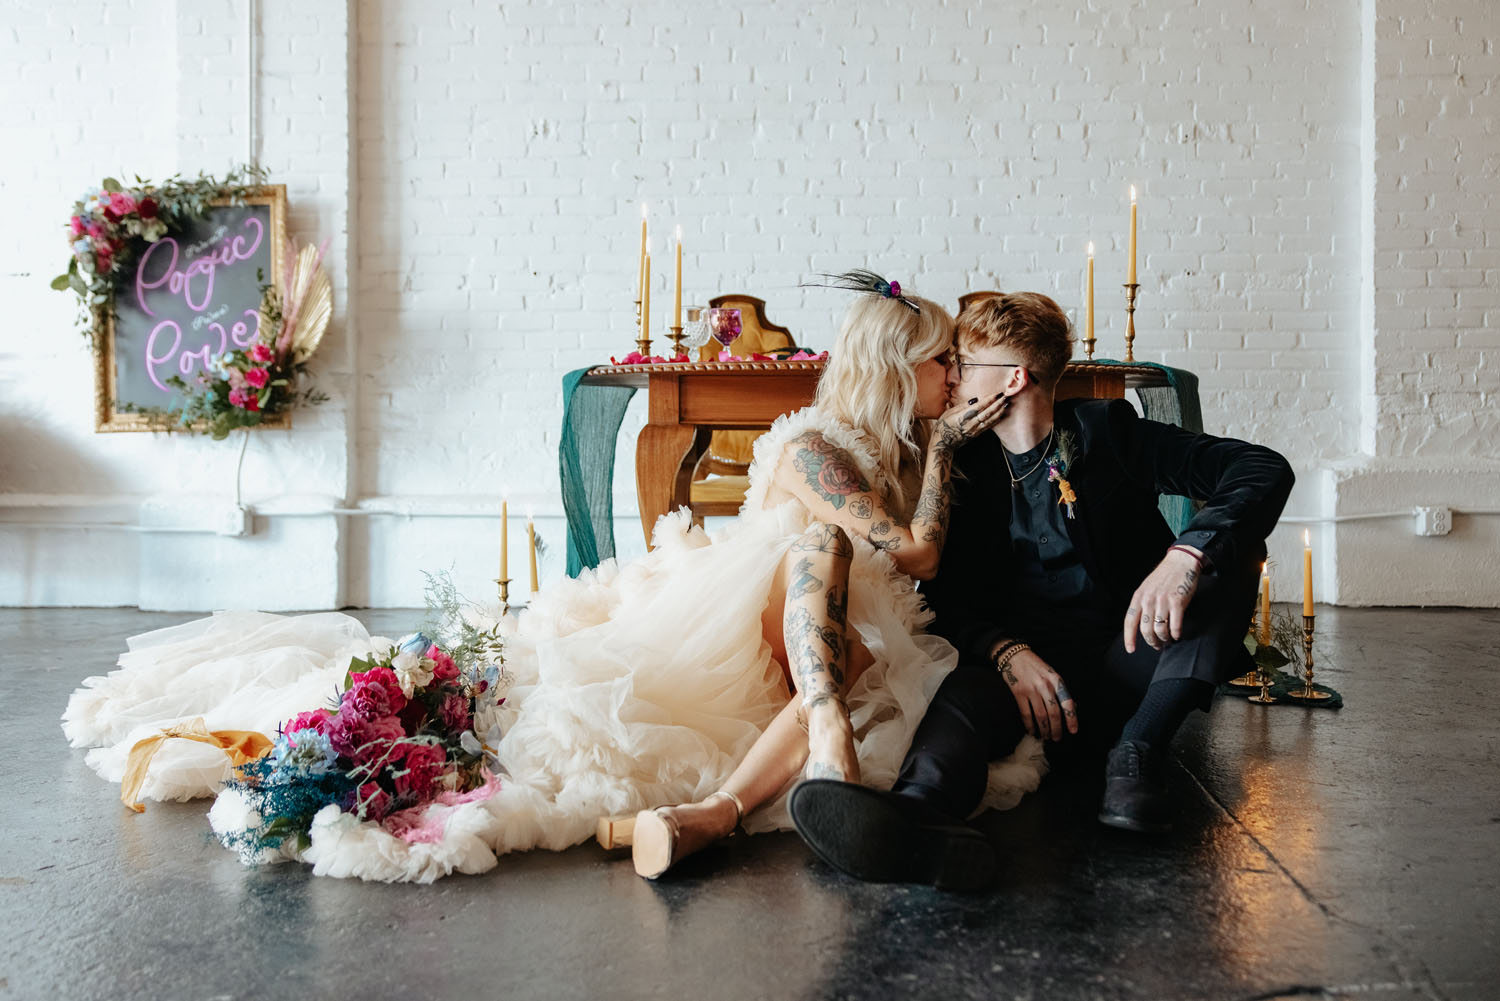 Carrie Big Sex and the City Themed Wedding